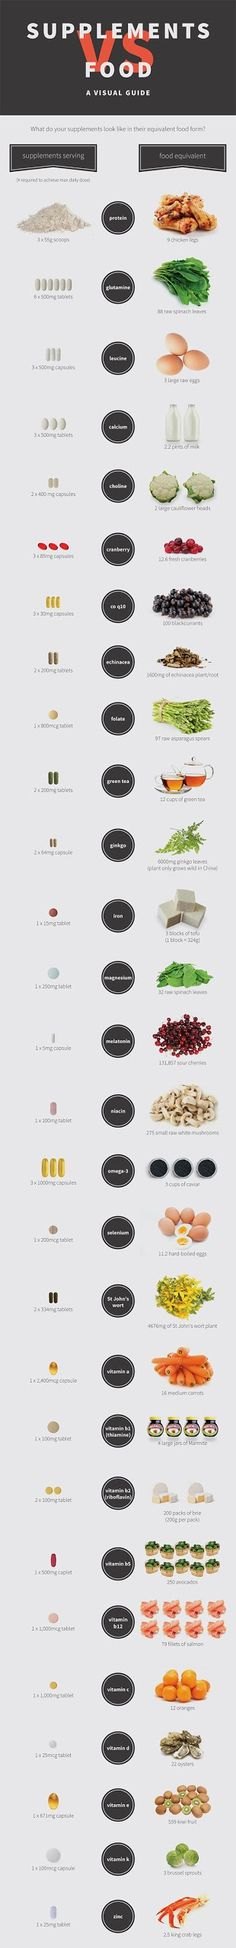 Supplements vs. Food Visual Guide [Infographic]